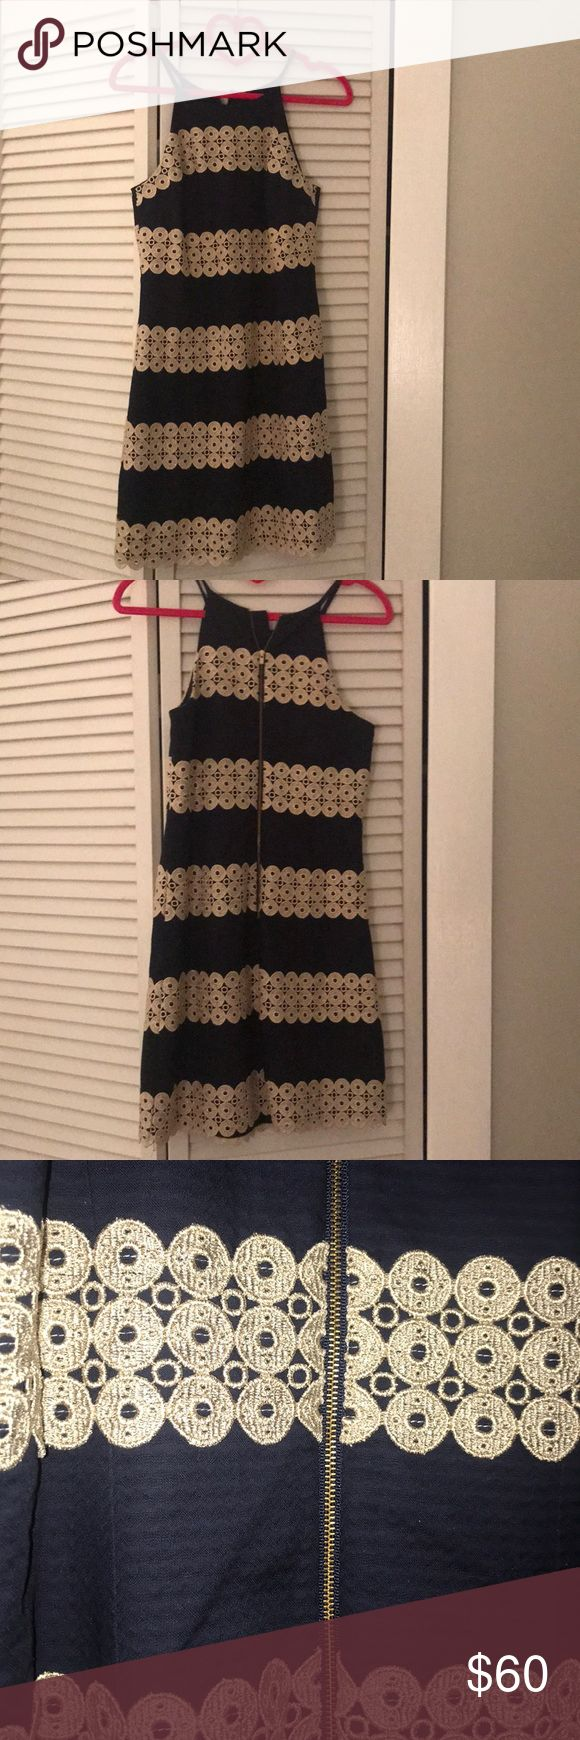 Lilly Pulitzer Navy and Gold Dress Lilly Pulitzer Navy and Gold Dress. Never worn! Lilly Pulitzer Dresses Mini